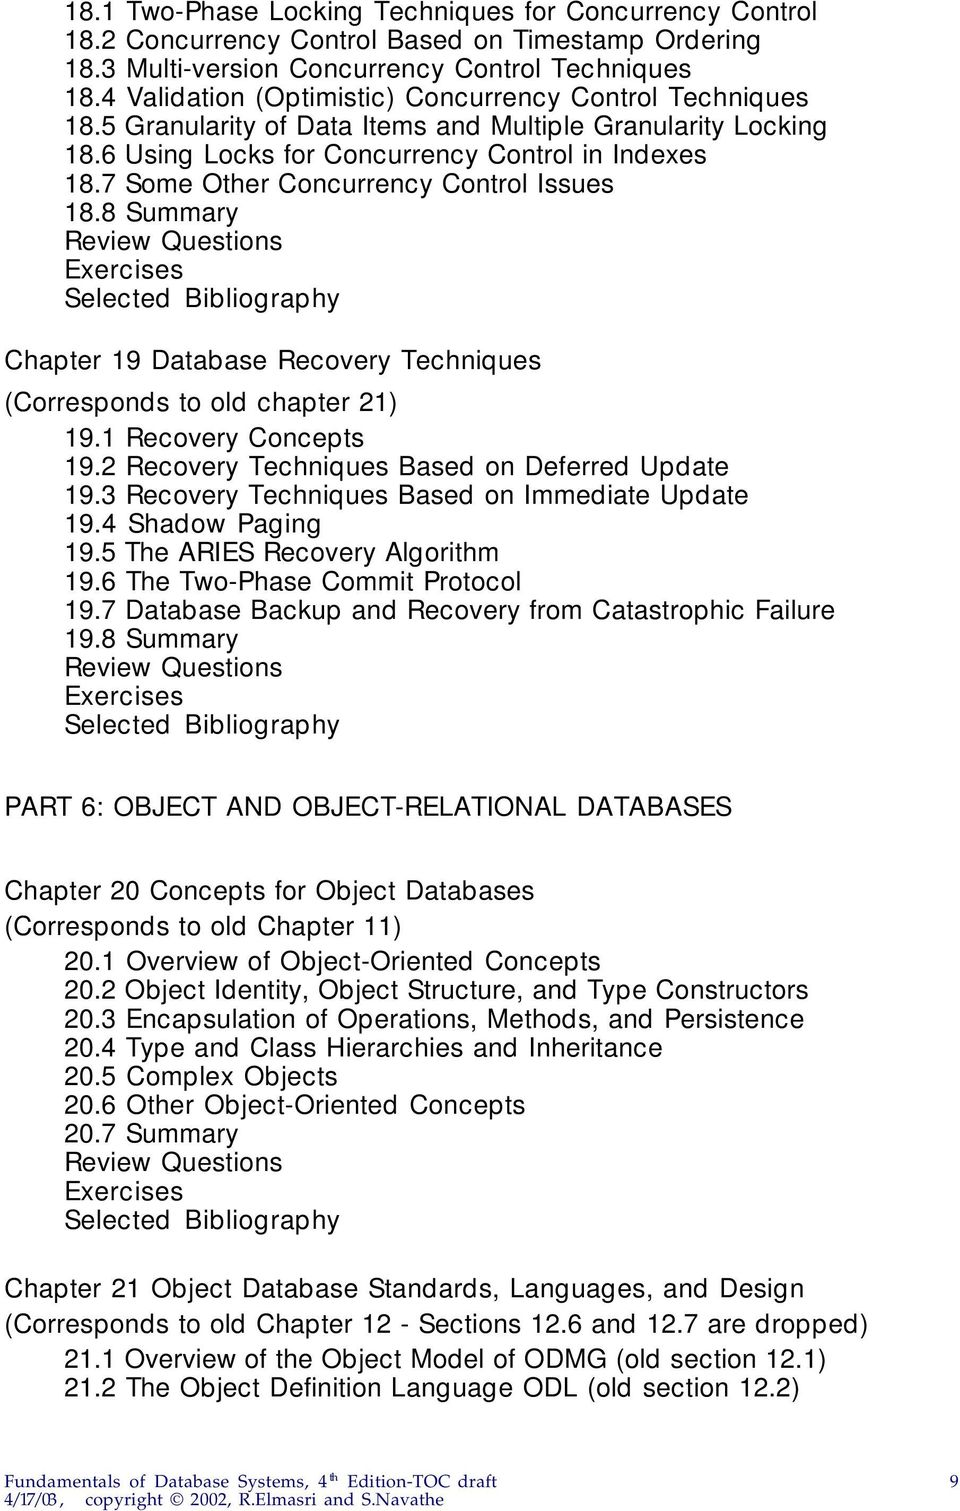 7 Some Other Concurrency Control Issues 18.8 Summary Chapter 19 Database Recovery Techniques (Corresponds to old chapter 21) 19.1 Recovery Concepts 19.